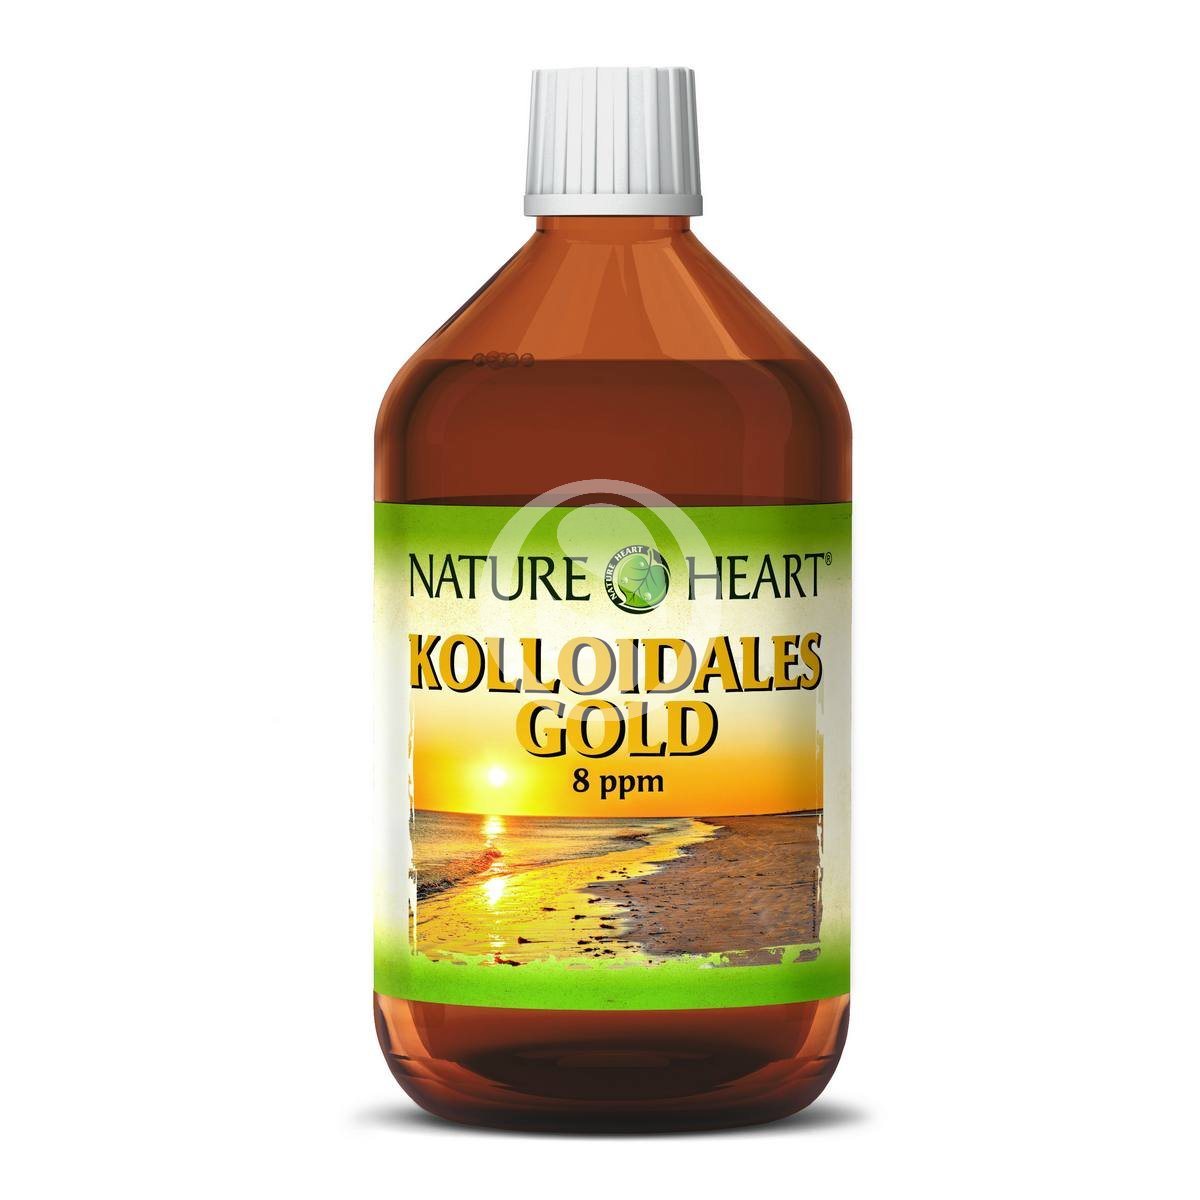 Produktbild Nature Heart KOLLOIDALES GOLD 8ppm 500ml